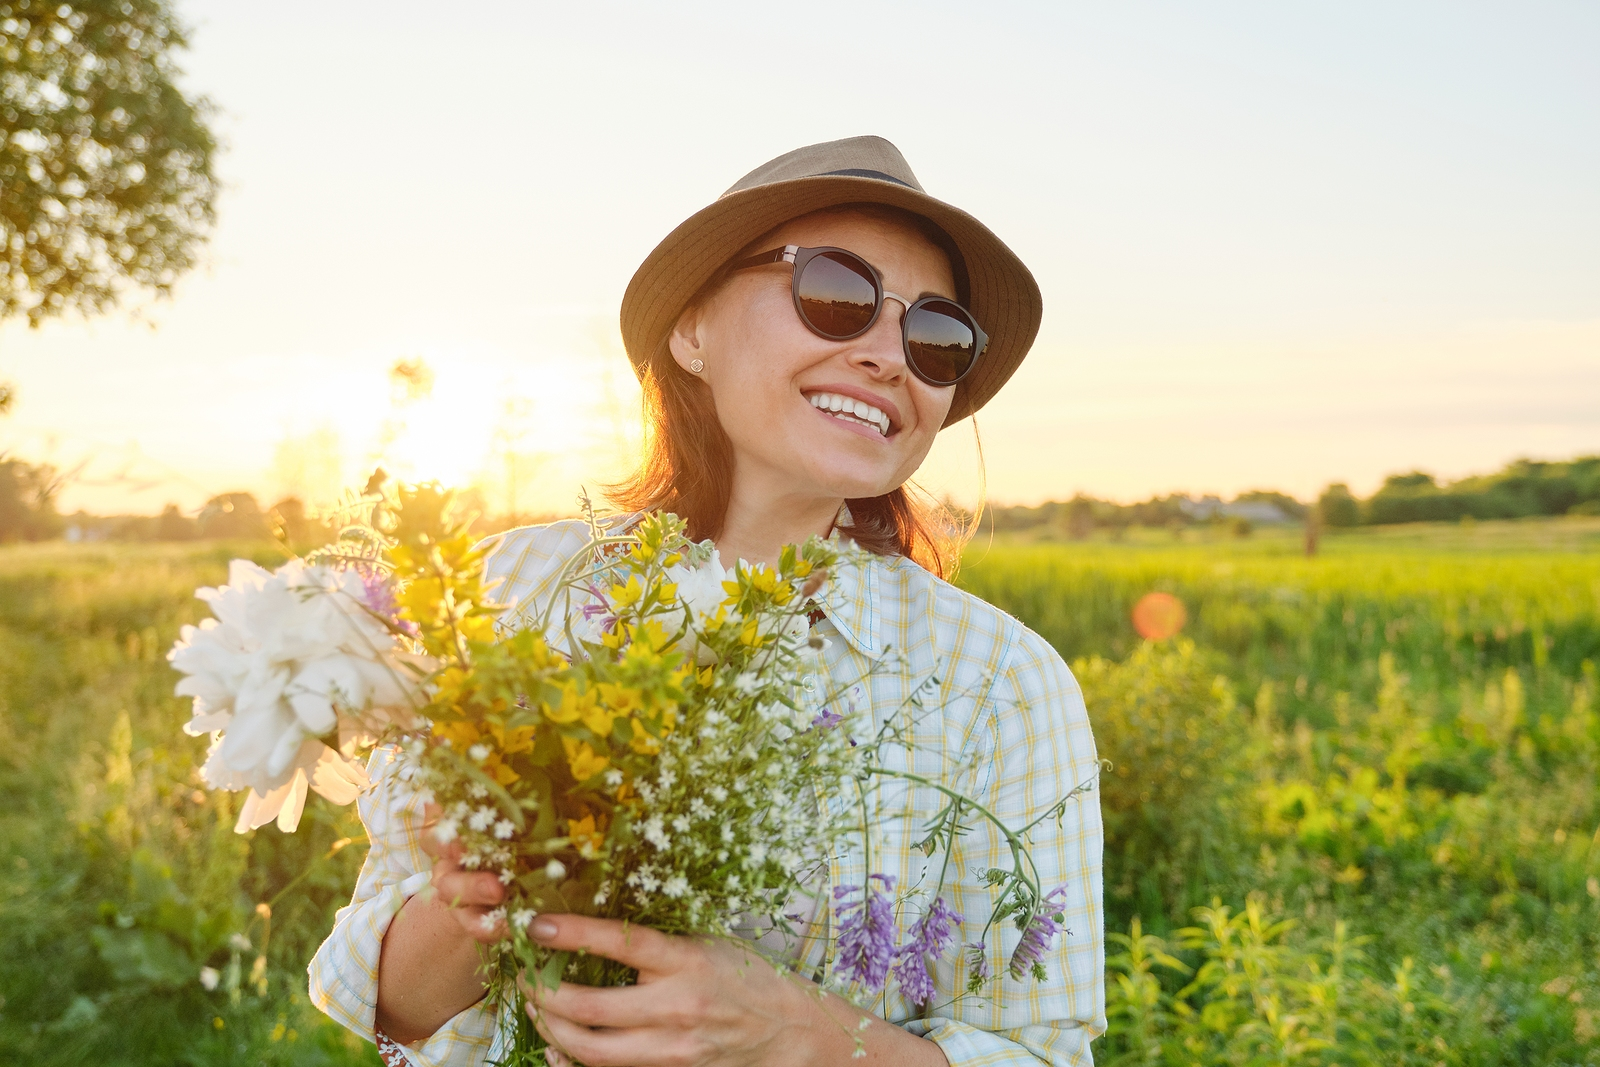 Outdoor Portrait Of Mature Happy Smiling Woman